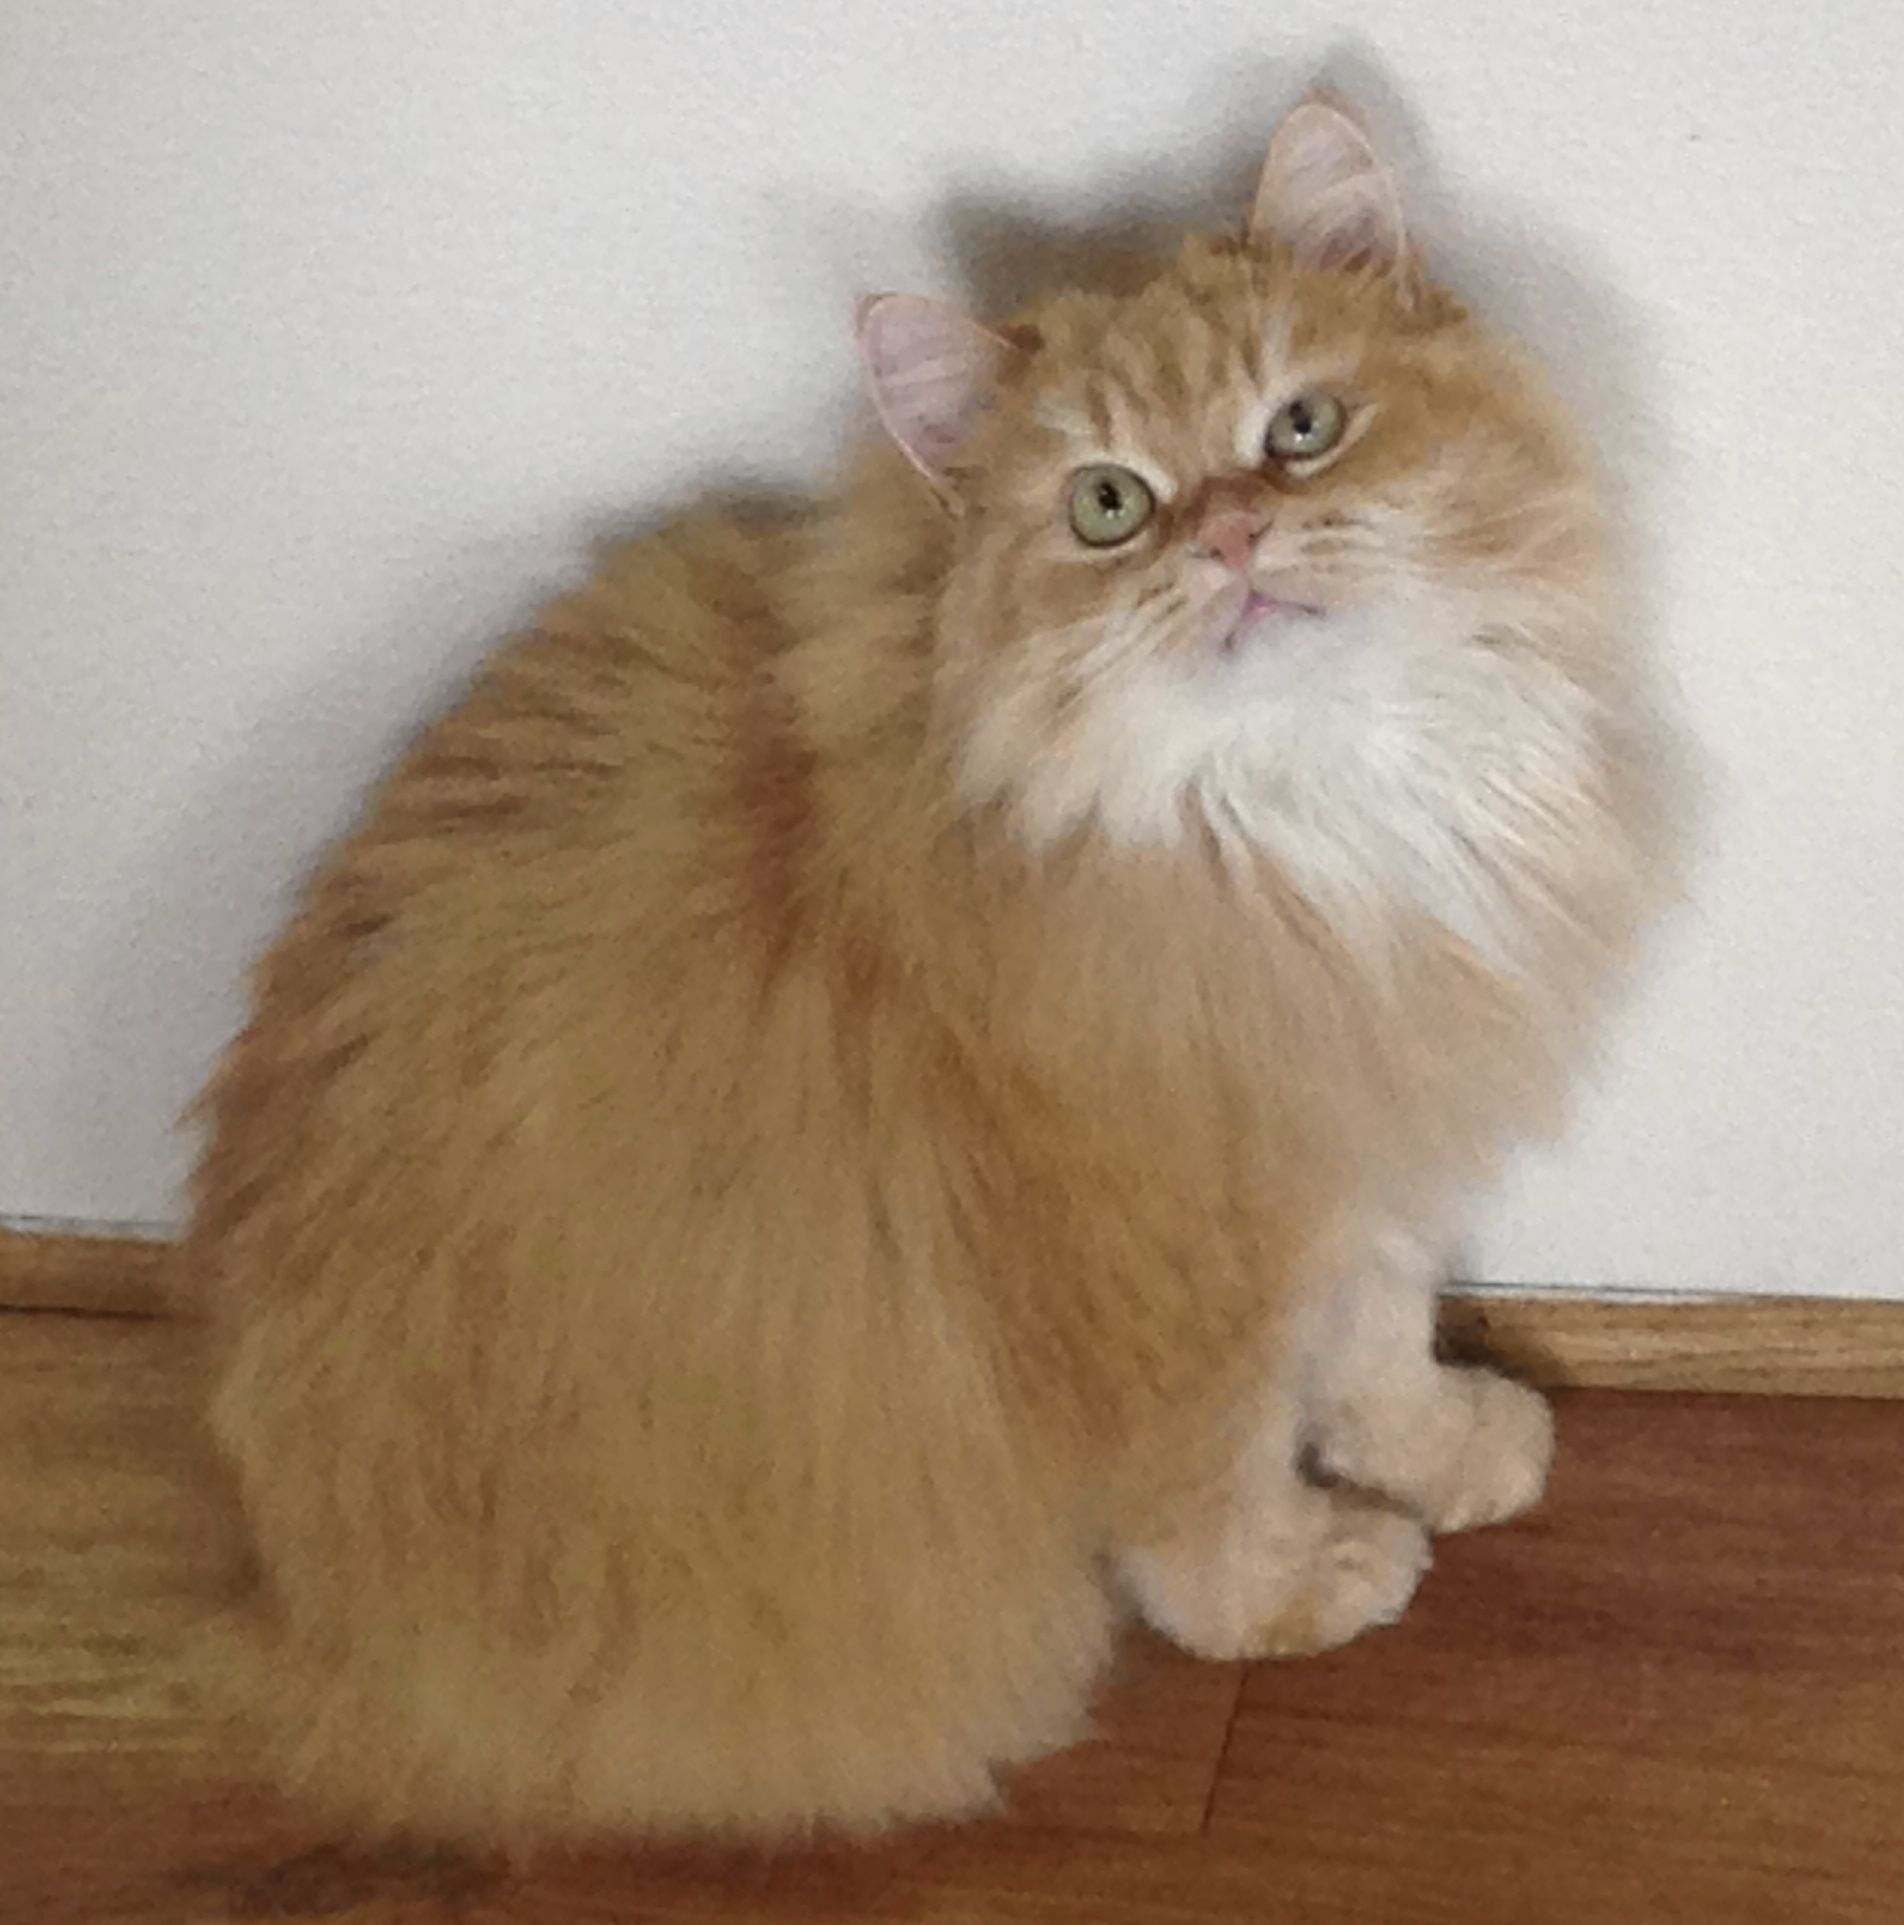 Cymric Cat Is A Breed Of Domestic Cat Some Cat Registries Consider The Cymric Cat Simply A Semi Long Haired Pretty Cats Long Hair Cat Breeds Long Haired Cats